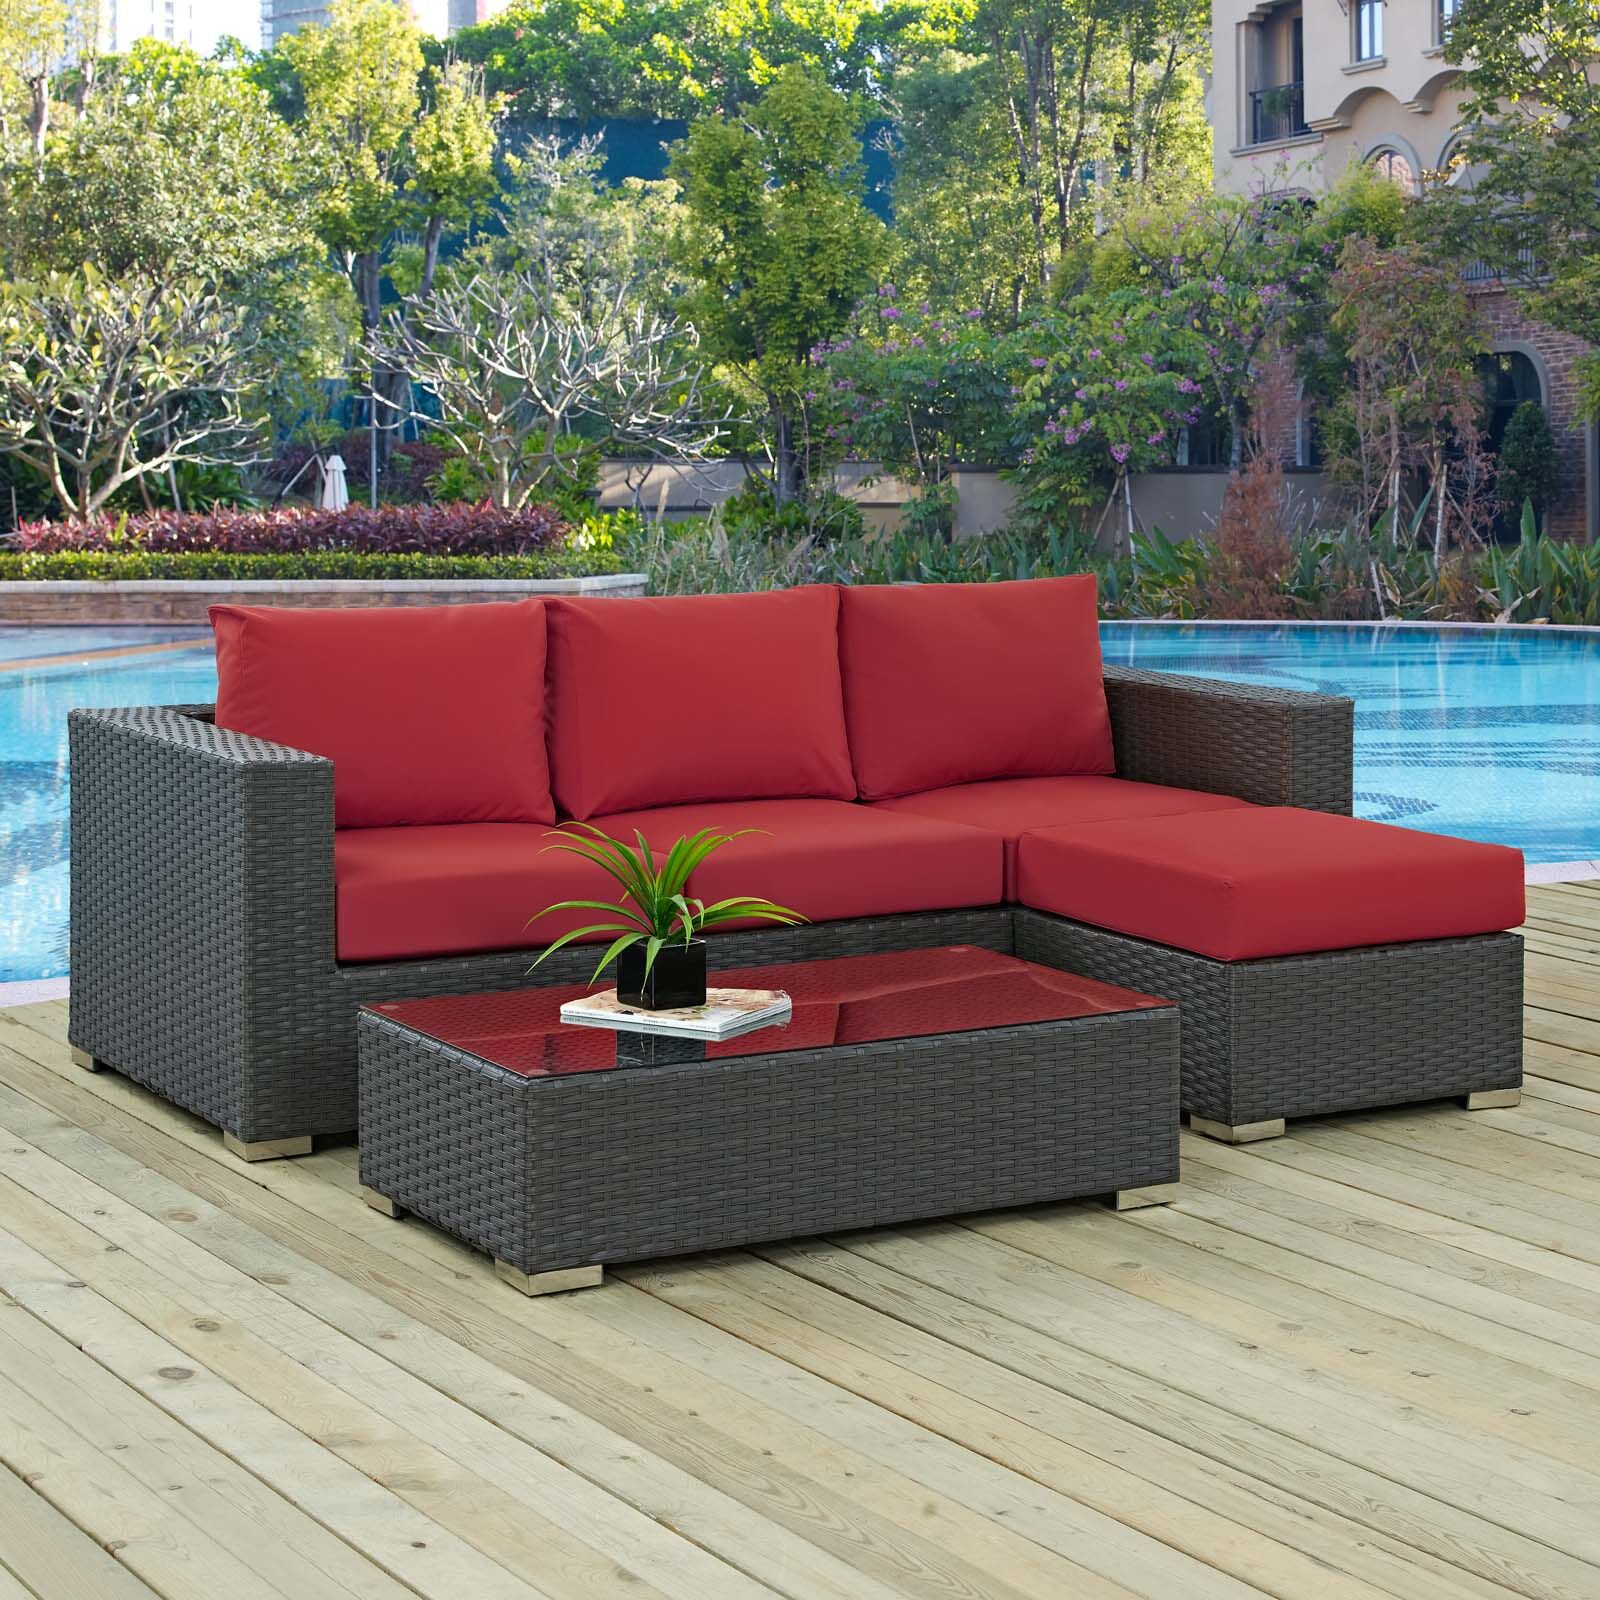 Leda 3 Piece Rattan Sunbrella Sofa Seating Group with Cushions Cushion Color: Red